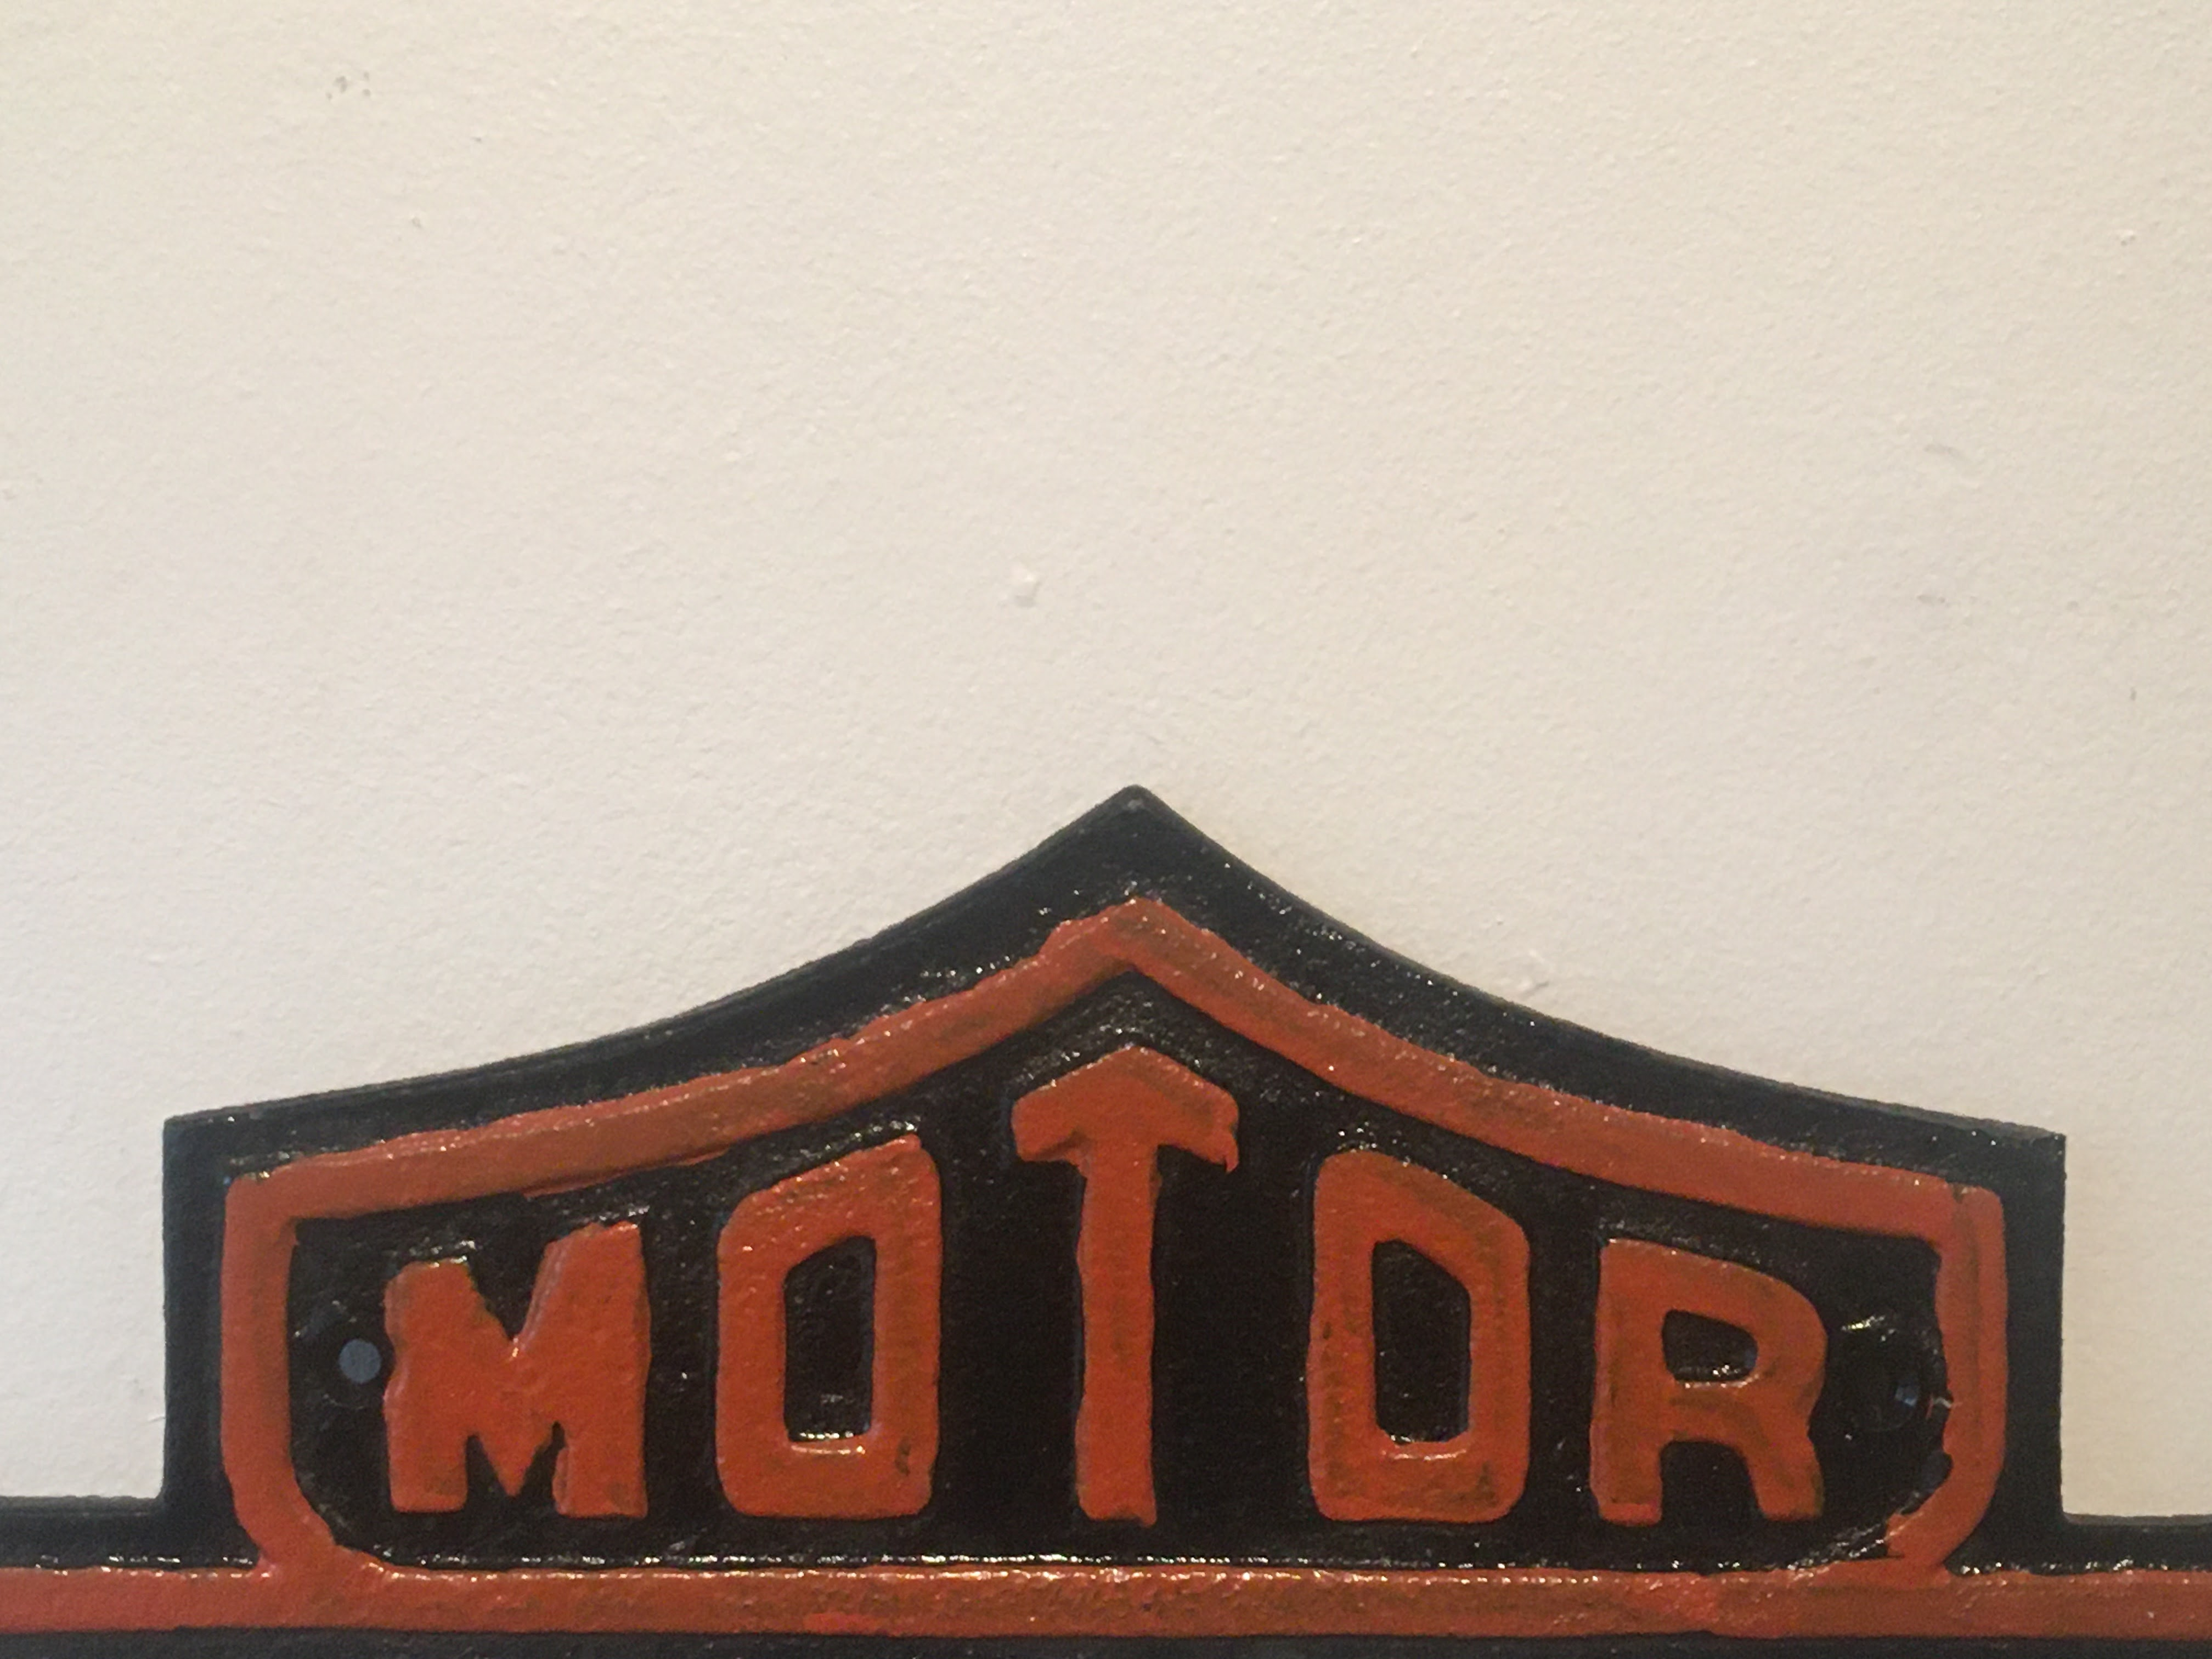 Harley Davidson Motorcycles Cast Iron Sign - Image 2 of 3